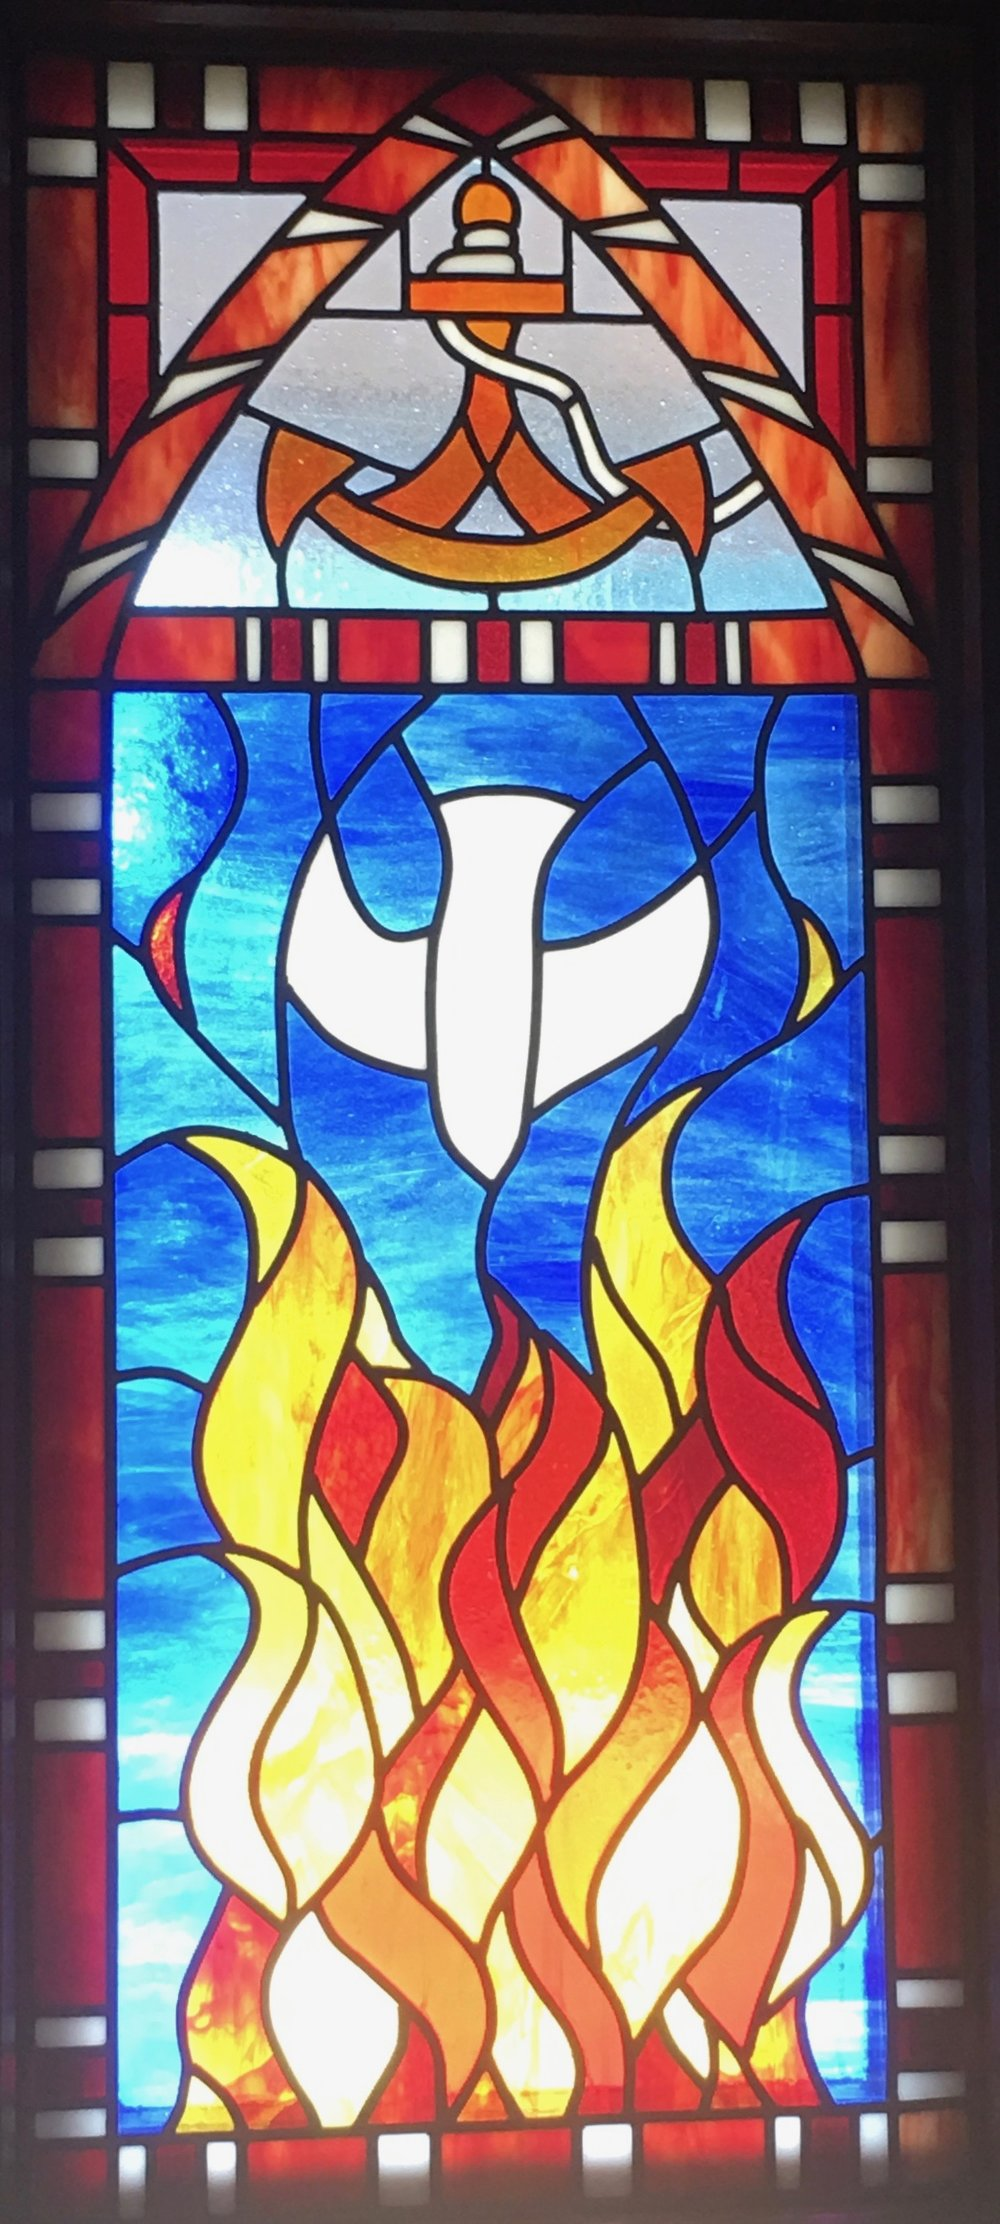 Stain Glass Anchor.jpg